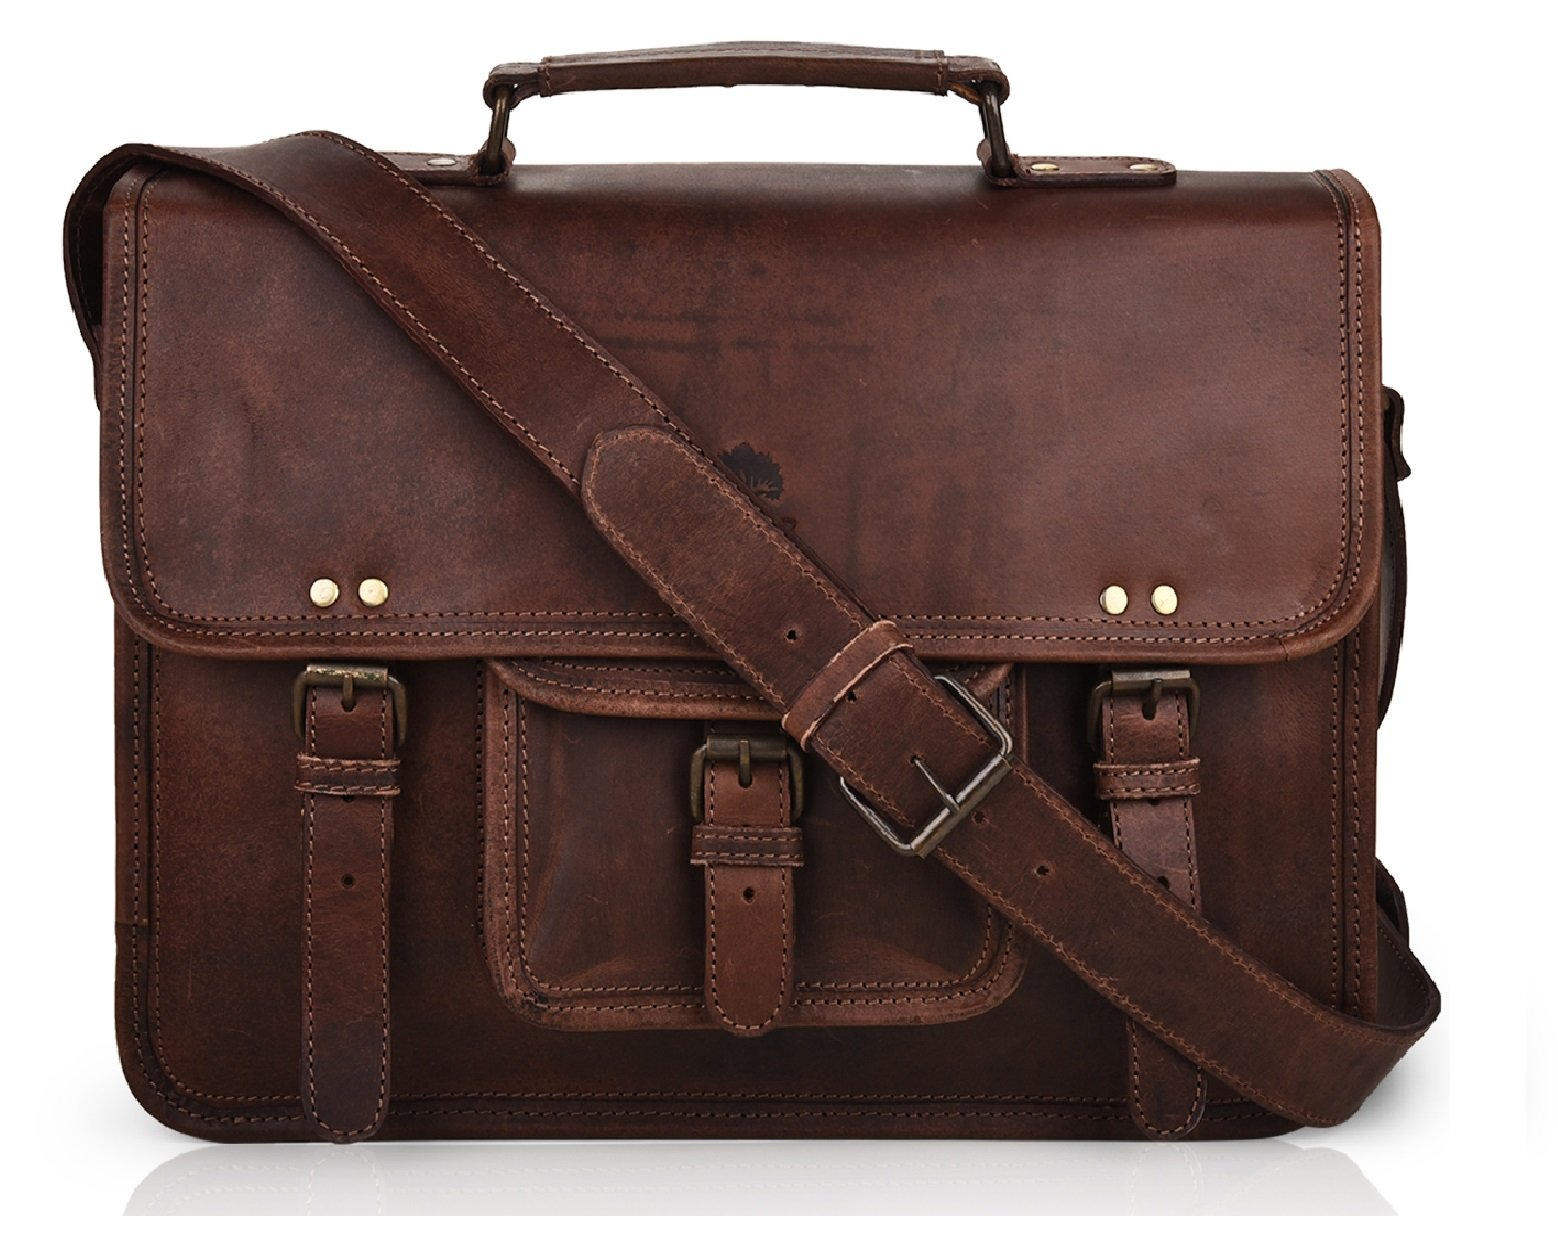 15 Inch Leather Vintage Rustic Crossbody Messenger Courier Satchel Bag Gift Men Women ~ Business Work Briefcase Carry Laptop Computer Book Handmade Rugged & Distressed ~ Everyday Office College School by RusticTown (Image #1)